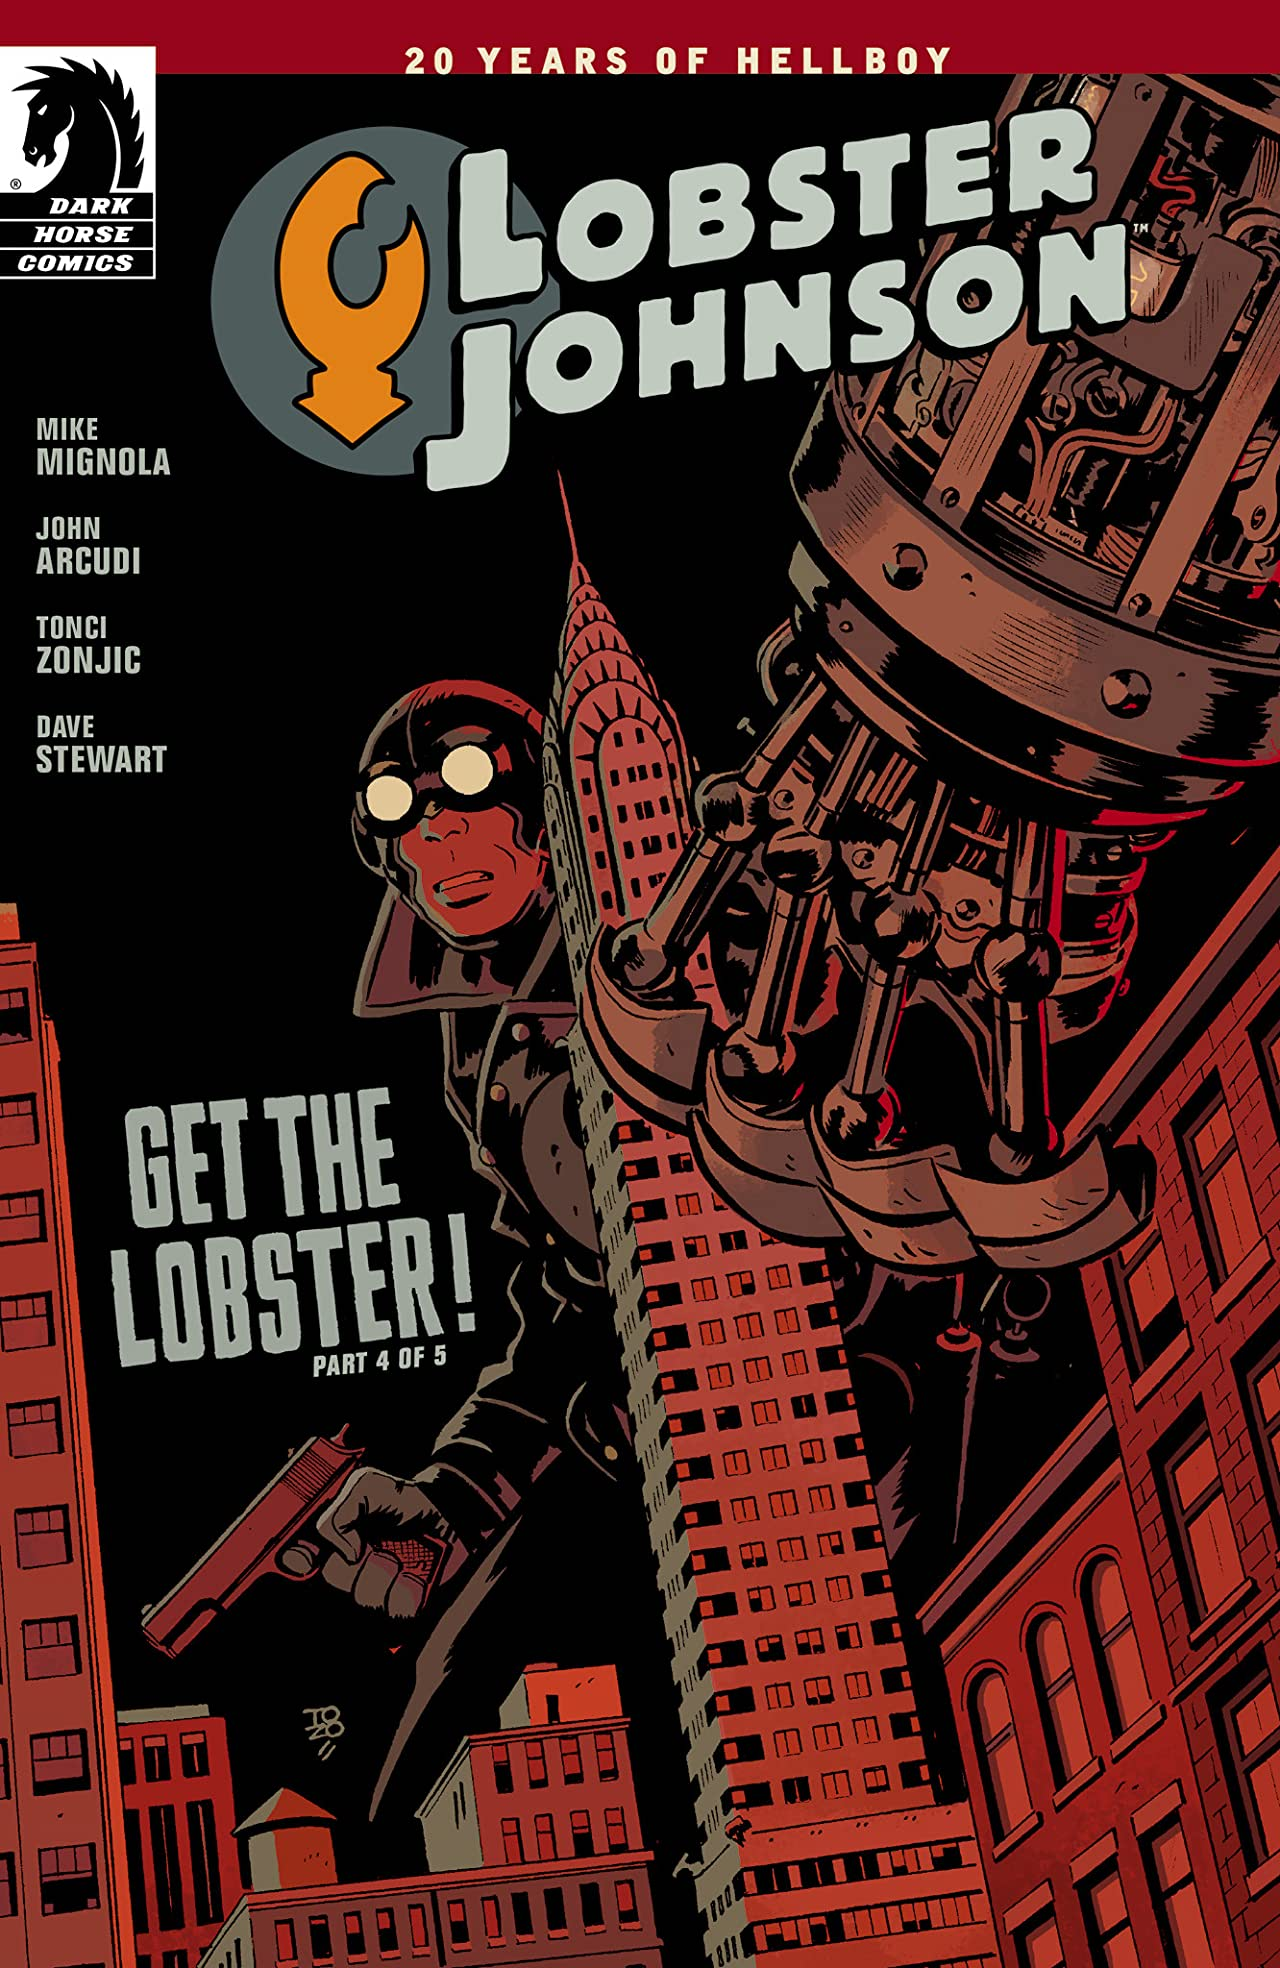 Lobster Johnson: Get the Lobster #4